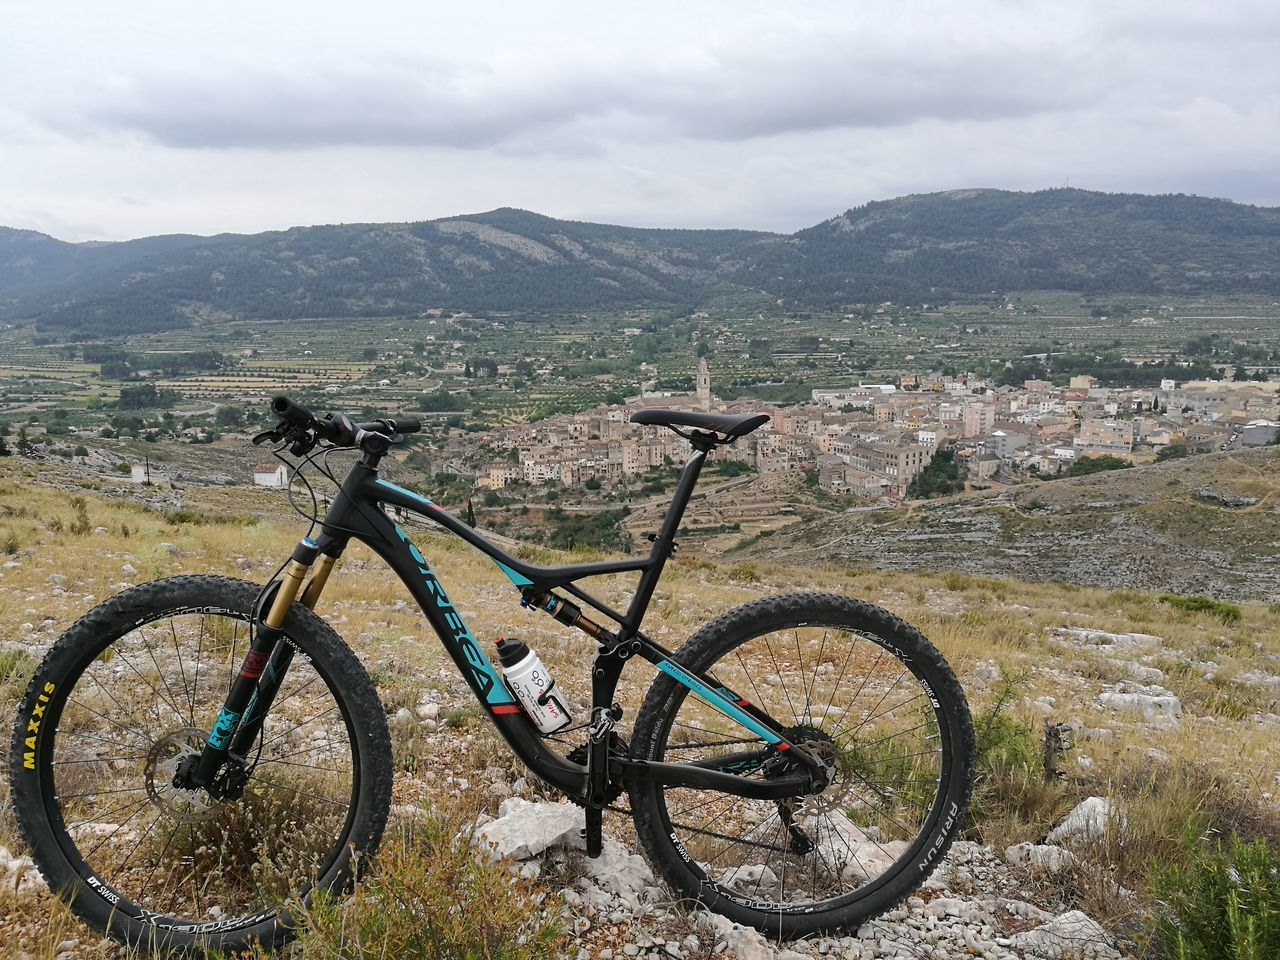 Bicycle Outdoors Landscape No People Mountain Nature Adventure Naturaleza Paisaje Montañas❤ Deruta Vidasana Deporte Mountainbike BTT MTB Trail Orbeabicycles Primavera Beauty In Nature Tranquility Desconexion